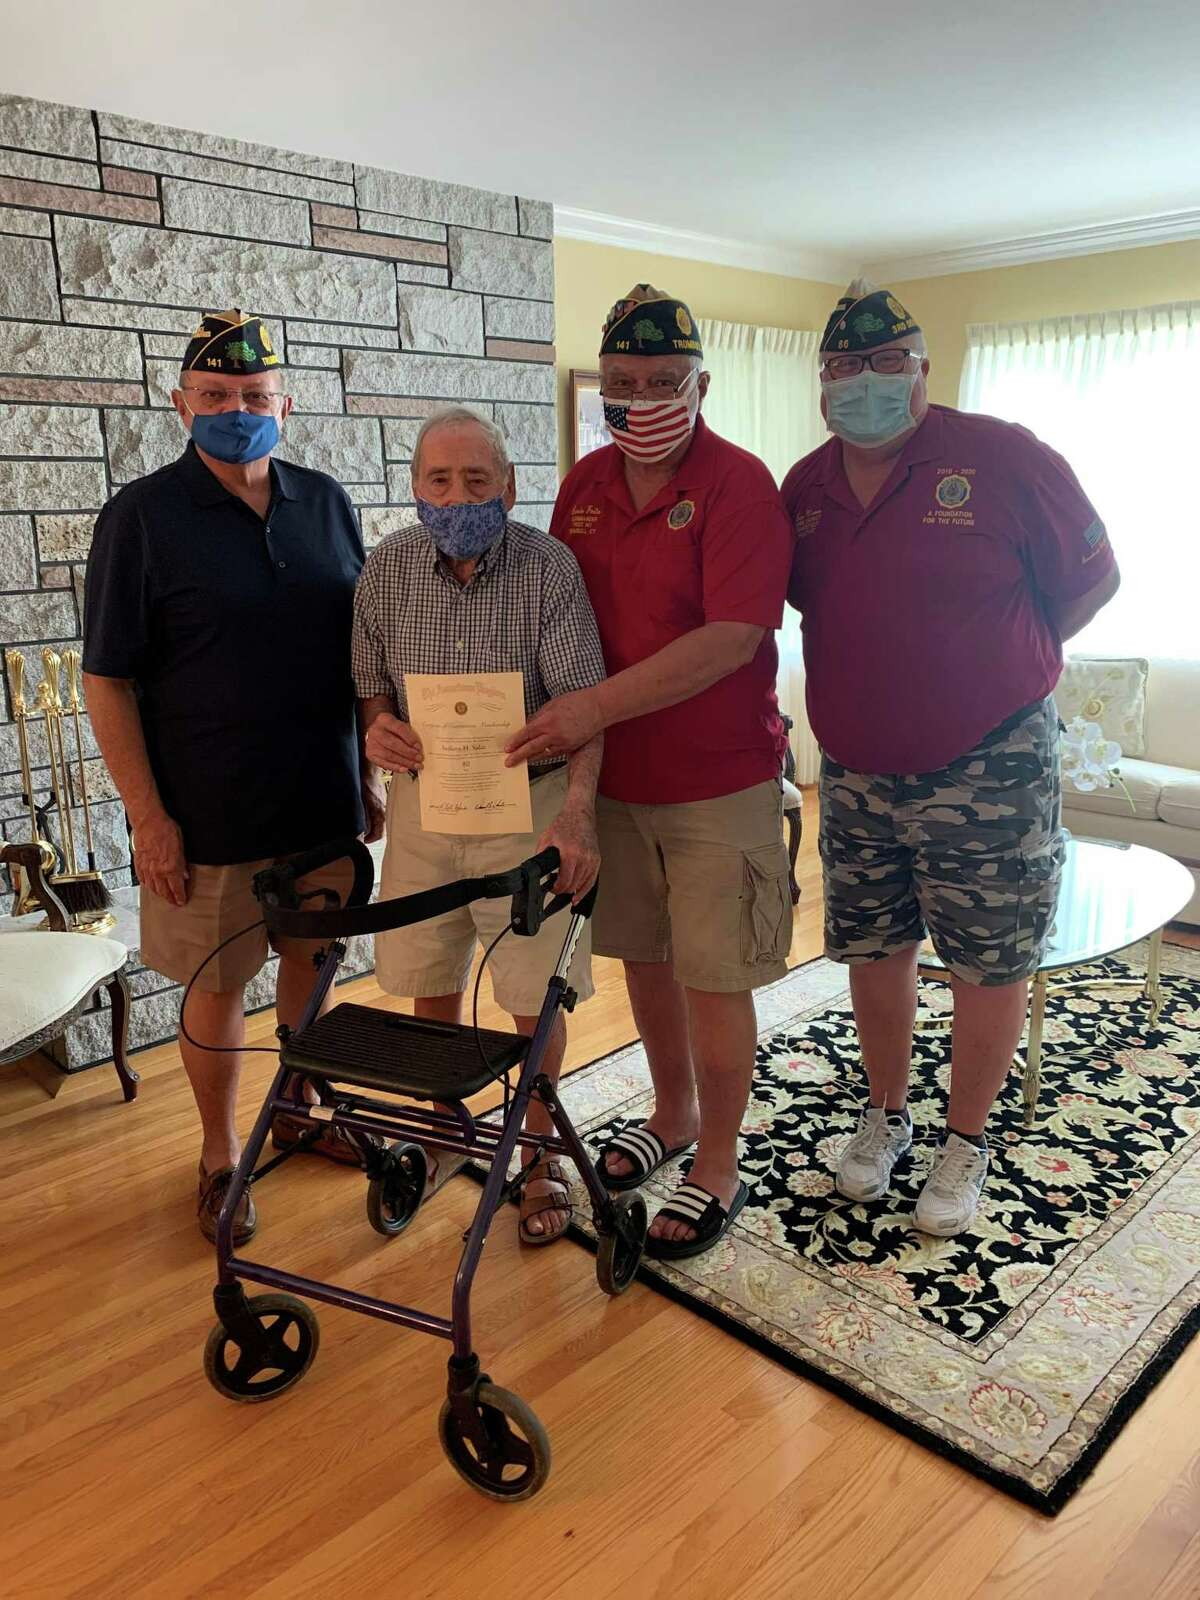 Anthony Salce was awarded a certificate for 80 years of continuous membership in the American Legion, which celebrated its 100th anniversary on June 10, 2019. At the same ceremony, Salce was given a seated walker. Anthony will turn 99 in January. He served in the United States Coast Guard during WWII and was at Normandy on D Day and is a member of American Legion Post 141 in Trumbull. Pictured are Senior-Vice Commander Joseph Montanaro, Commander Ernie Foito and District 3 Adjutant Tom Moore along with Salce.